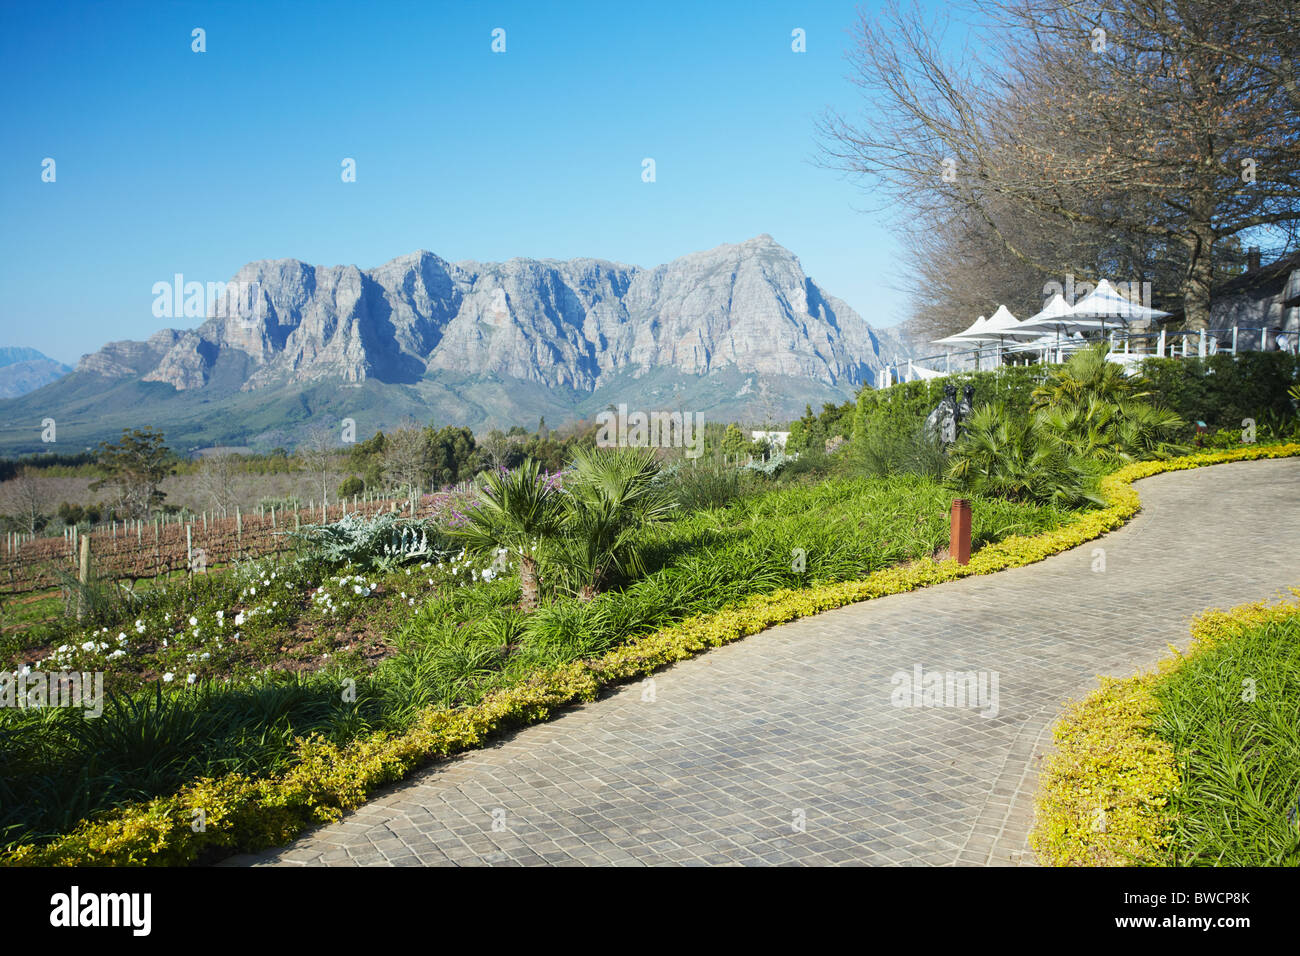 Delaire Wine Estate, Stellenbosch, Western Cape, South Africa - Stock Image